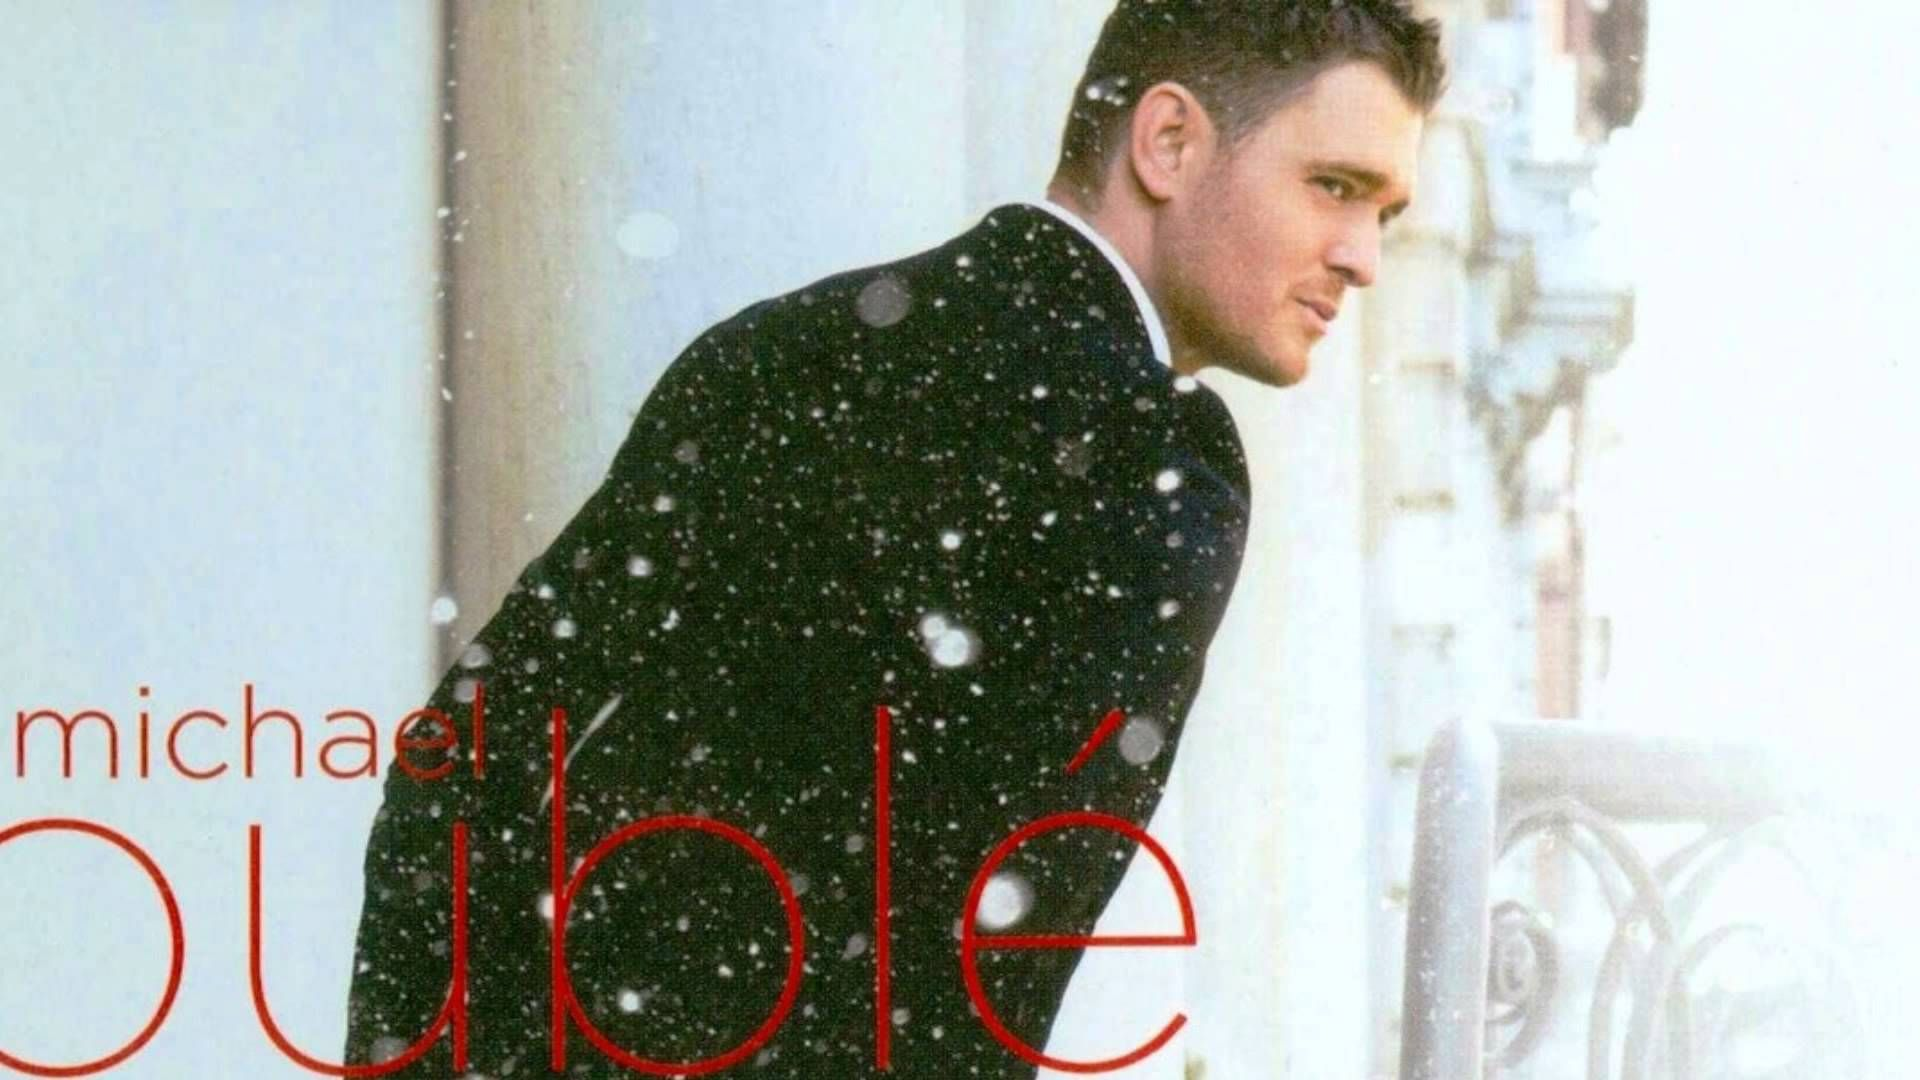 Michael Buble Holly Jolly Christmas.06 Michael Buble Holly Jolly Christmas Christmas Music